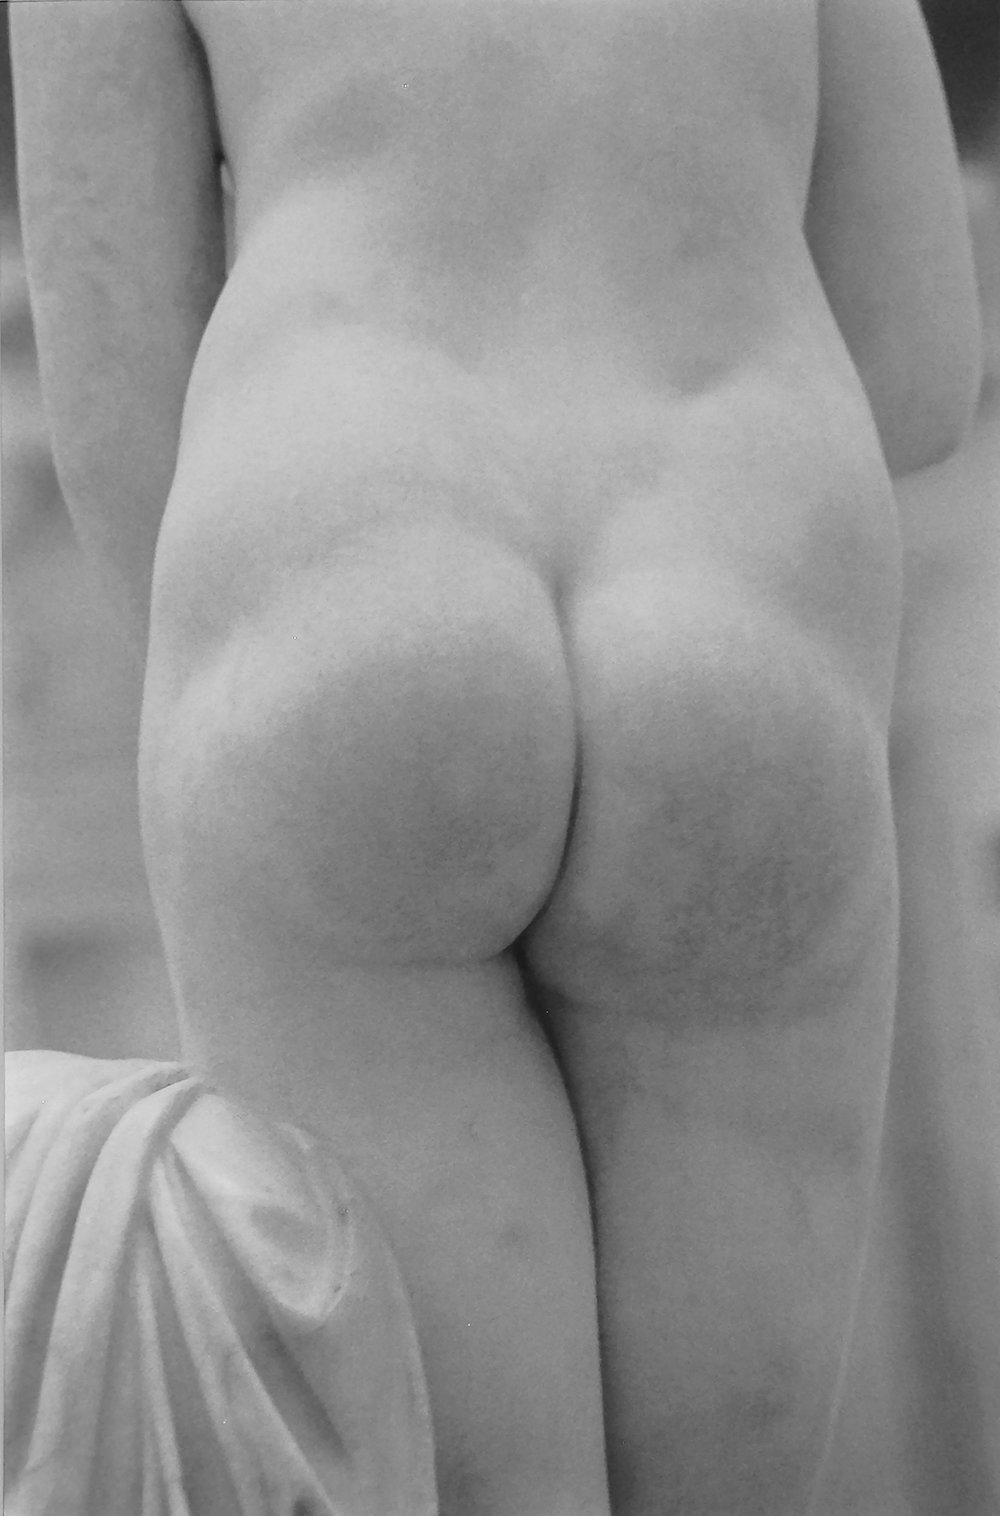 Venus' Bottom